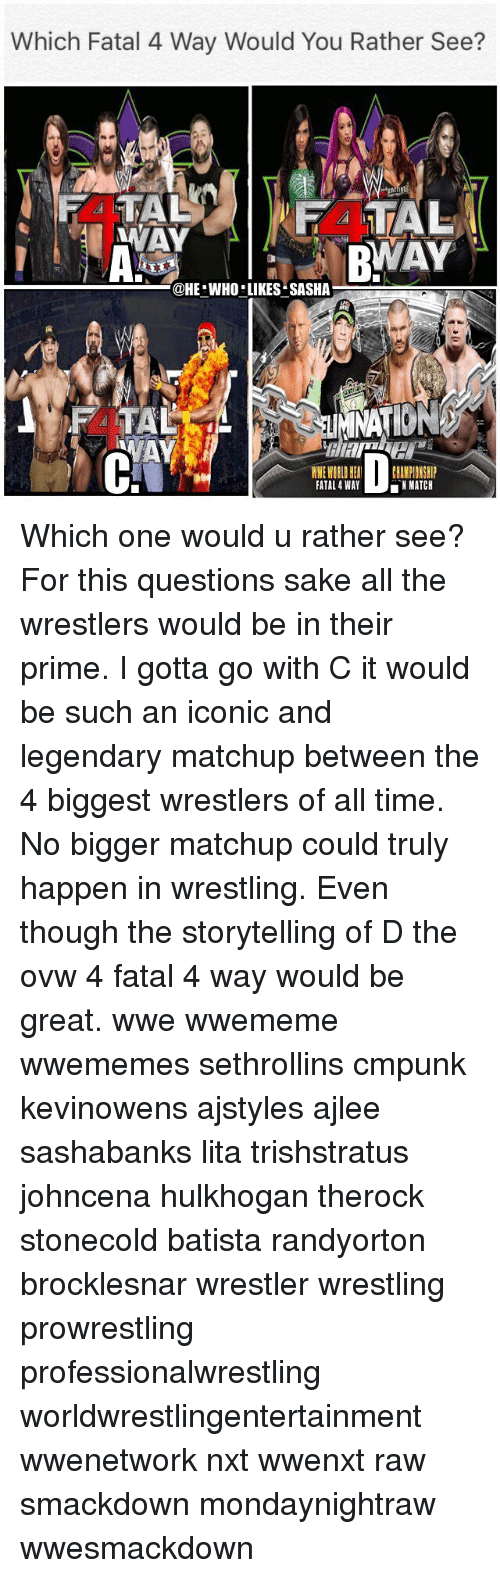 Batista: Which Fatal 4 Way Would You Rather See?  @HE WHO LIKES SASHA  TA  FATAL 4 WAY  MATCH Which one would u rather see? For this questions sake all the wrestlers would be in their prime. I gotta go with C it would be such an iconic and legendary matchup between the 4 biggest wrestlers of all time. No bigger matchup could truly happen in wrestling. Even though the storytelling of D the ovw 4 fatal 4 way would be great. wwe wwememe wwememes sethrollins cmpunk kevinowens ajstyles ajlee sashabanks lita trishstratus johncena hulkhogan therock stonecold batista randyorton brocklesnar wrestler wrestling prowrestling professionalwrestling worldwrestlingentertainment wwenetwork nxt wwenxt raw smackdown mondaynightraw wwesmackdown